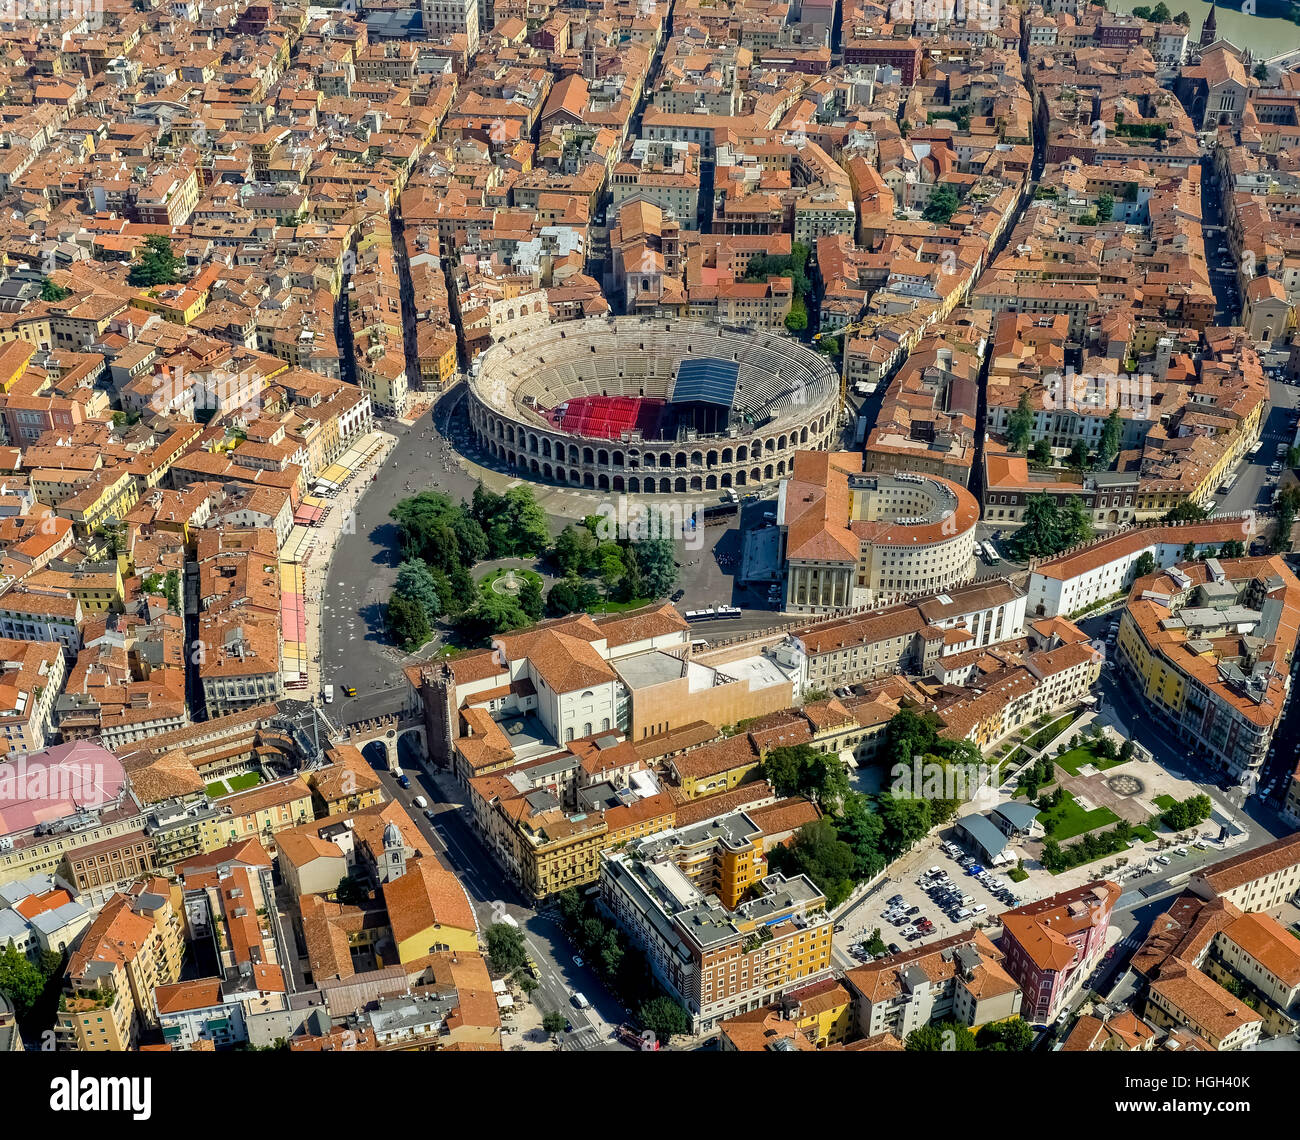 City view, city centre with Arena di Verona, Province of Verona, Veneto, Italy - Stock Image